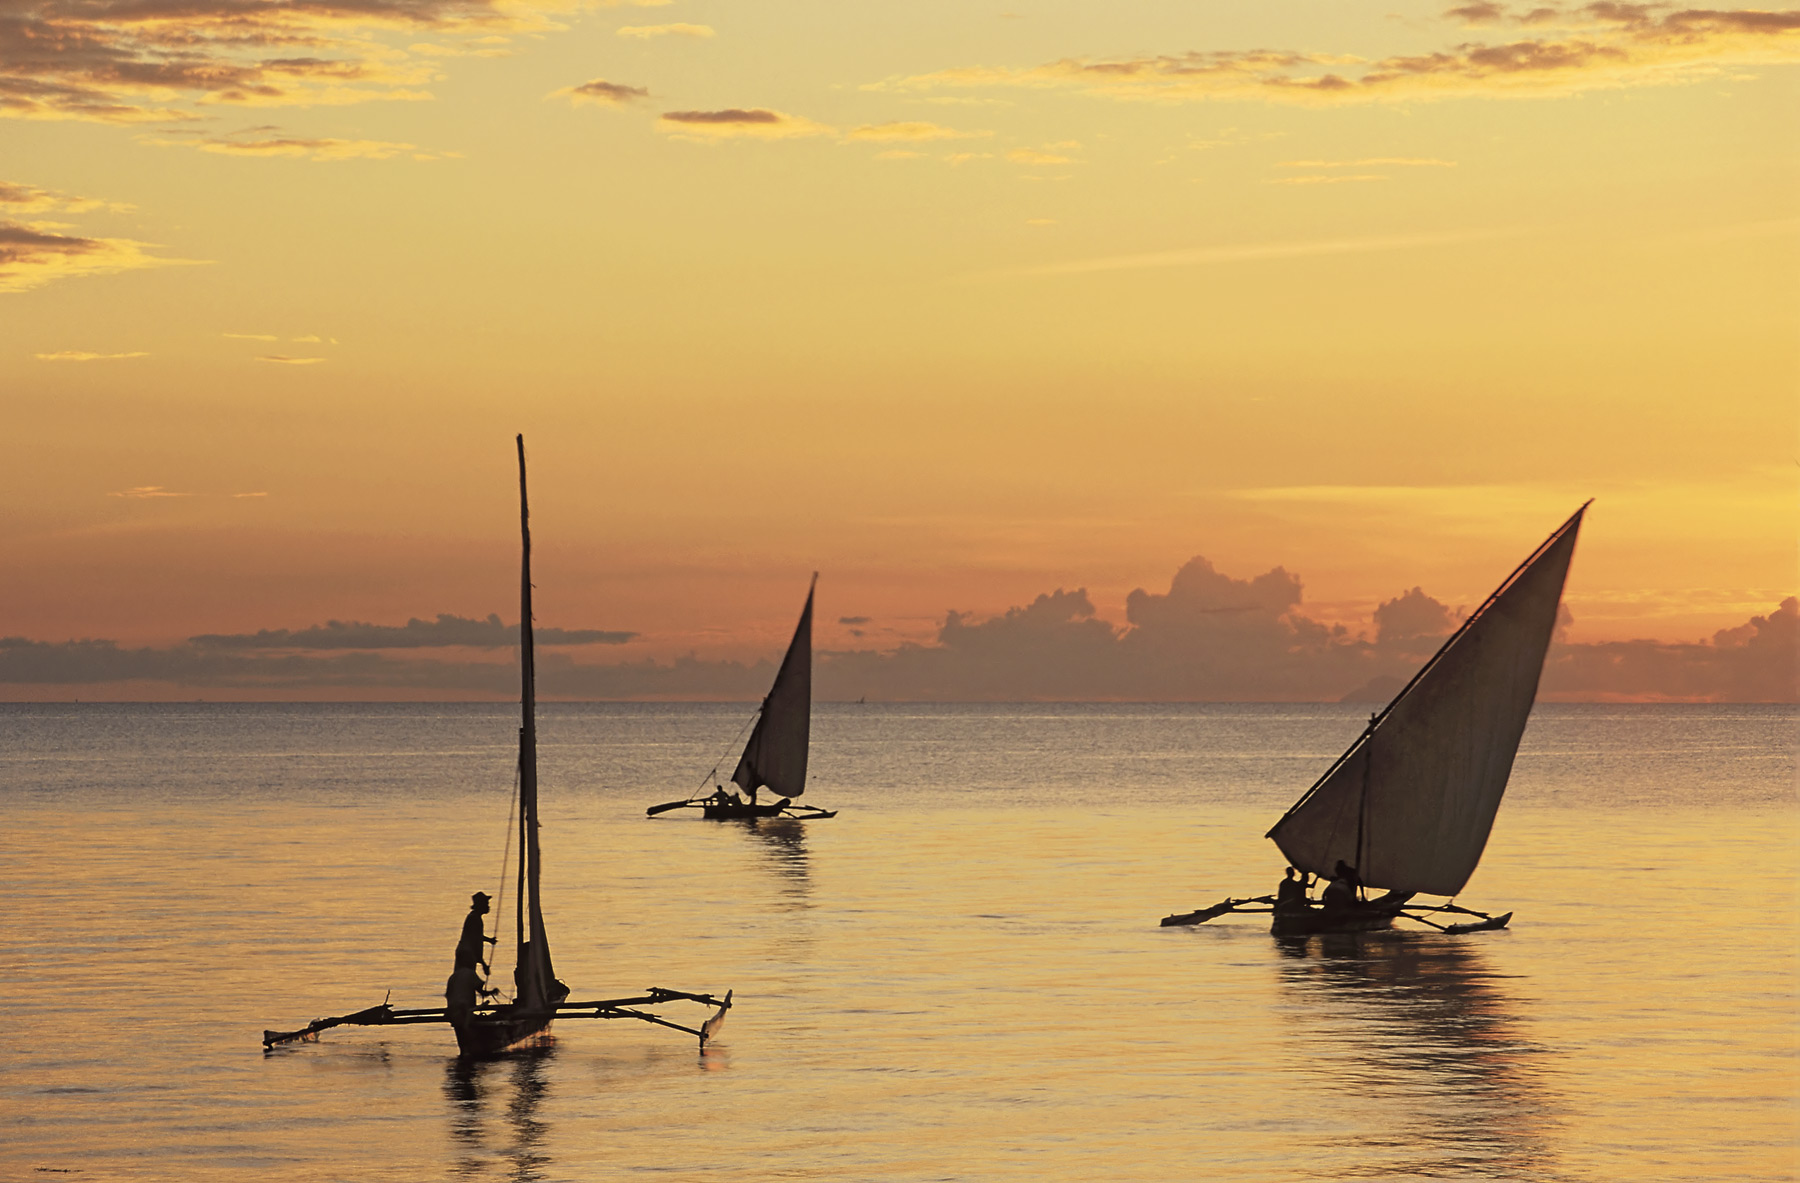 A glorious sight sailing dhows drifting into the most sumptuous dawn light eventually formed a triangular shape not dissimilar...